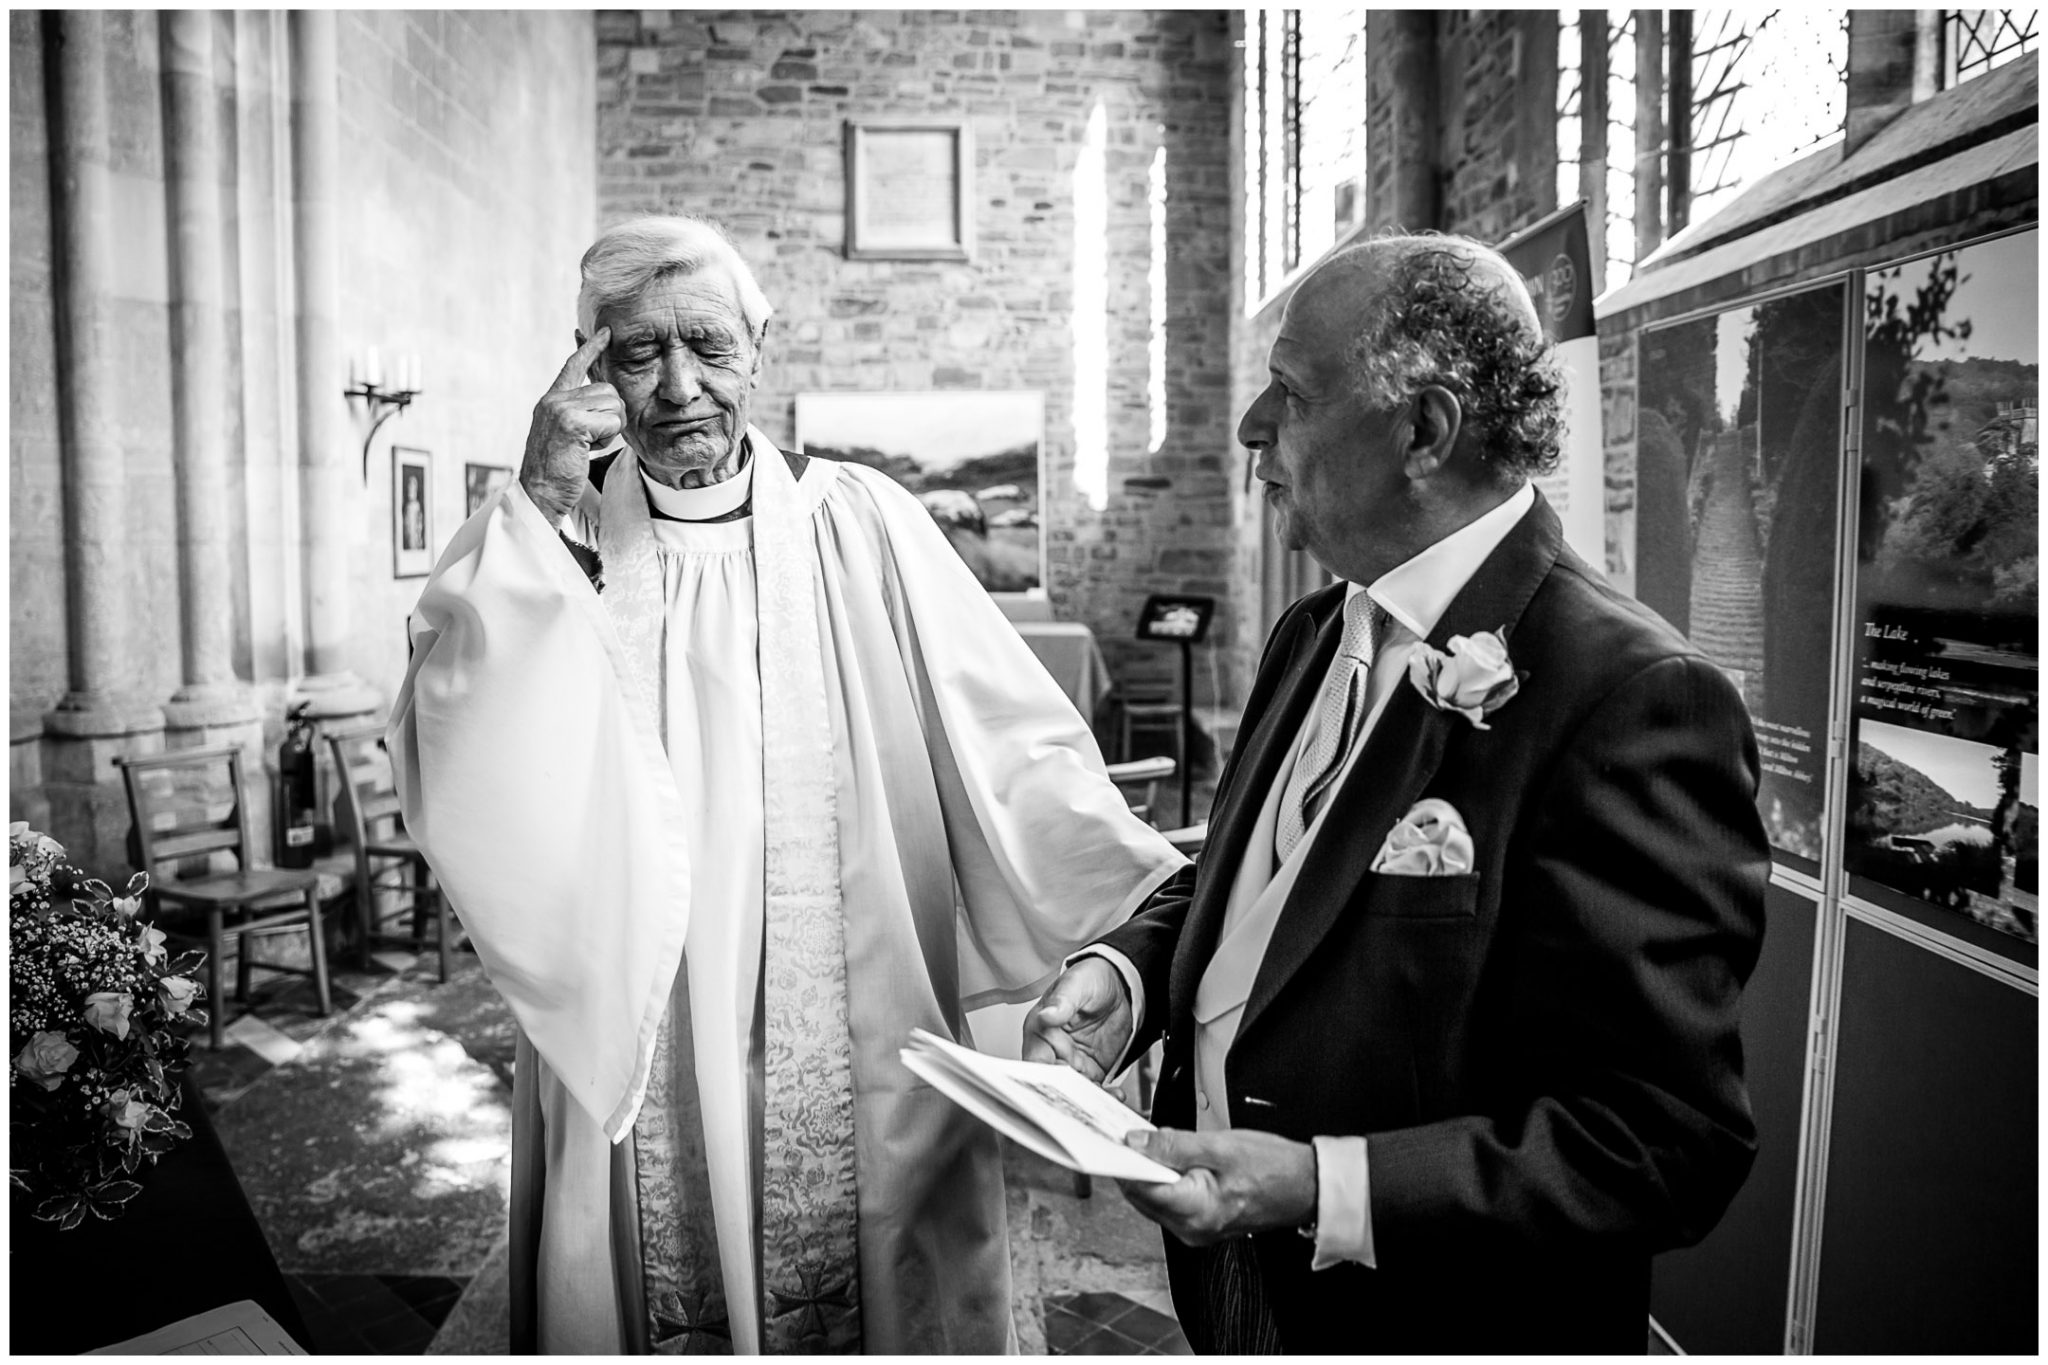 Candid moment with vicar and father of groom